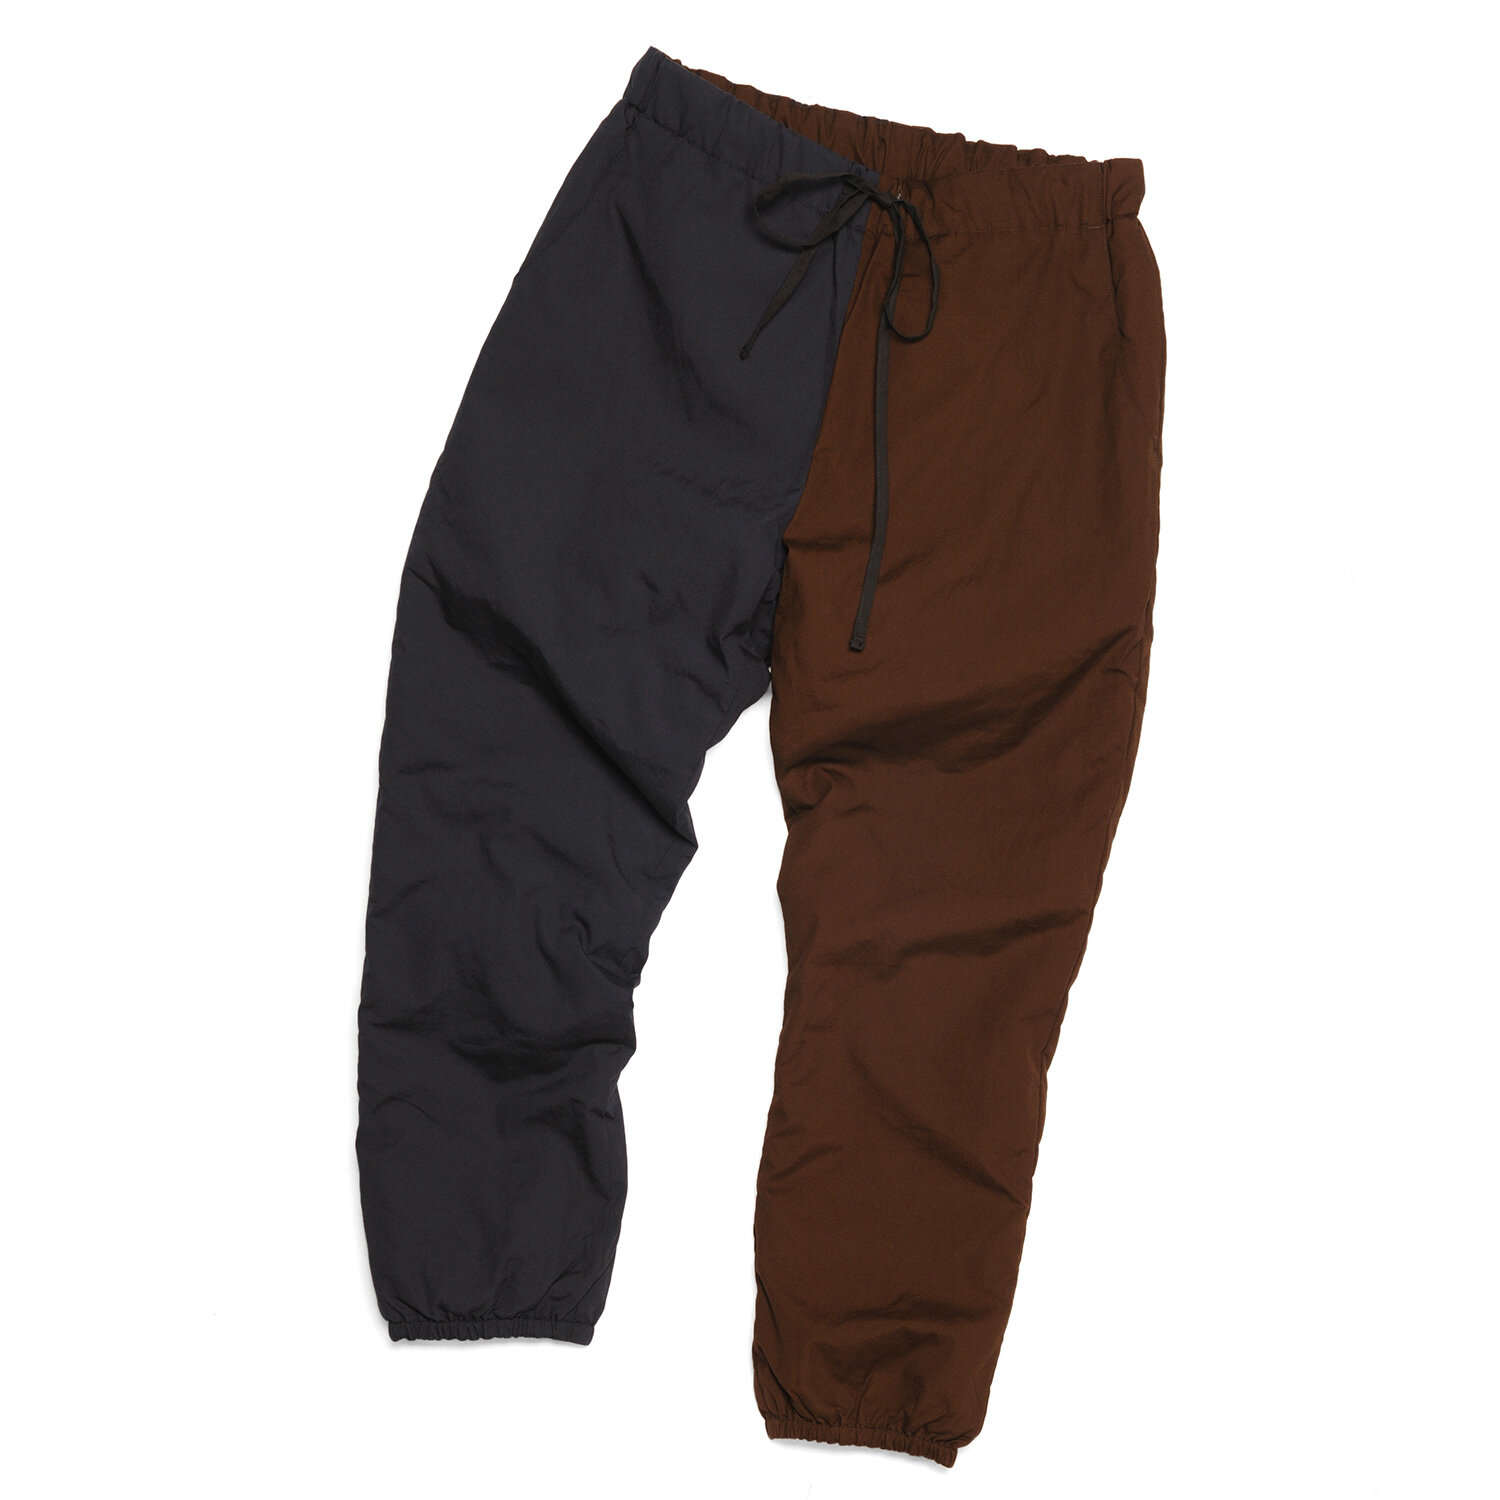 1-Insulated-Pants, -Navy-Brown,- Front.jpg